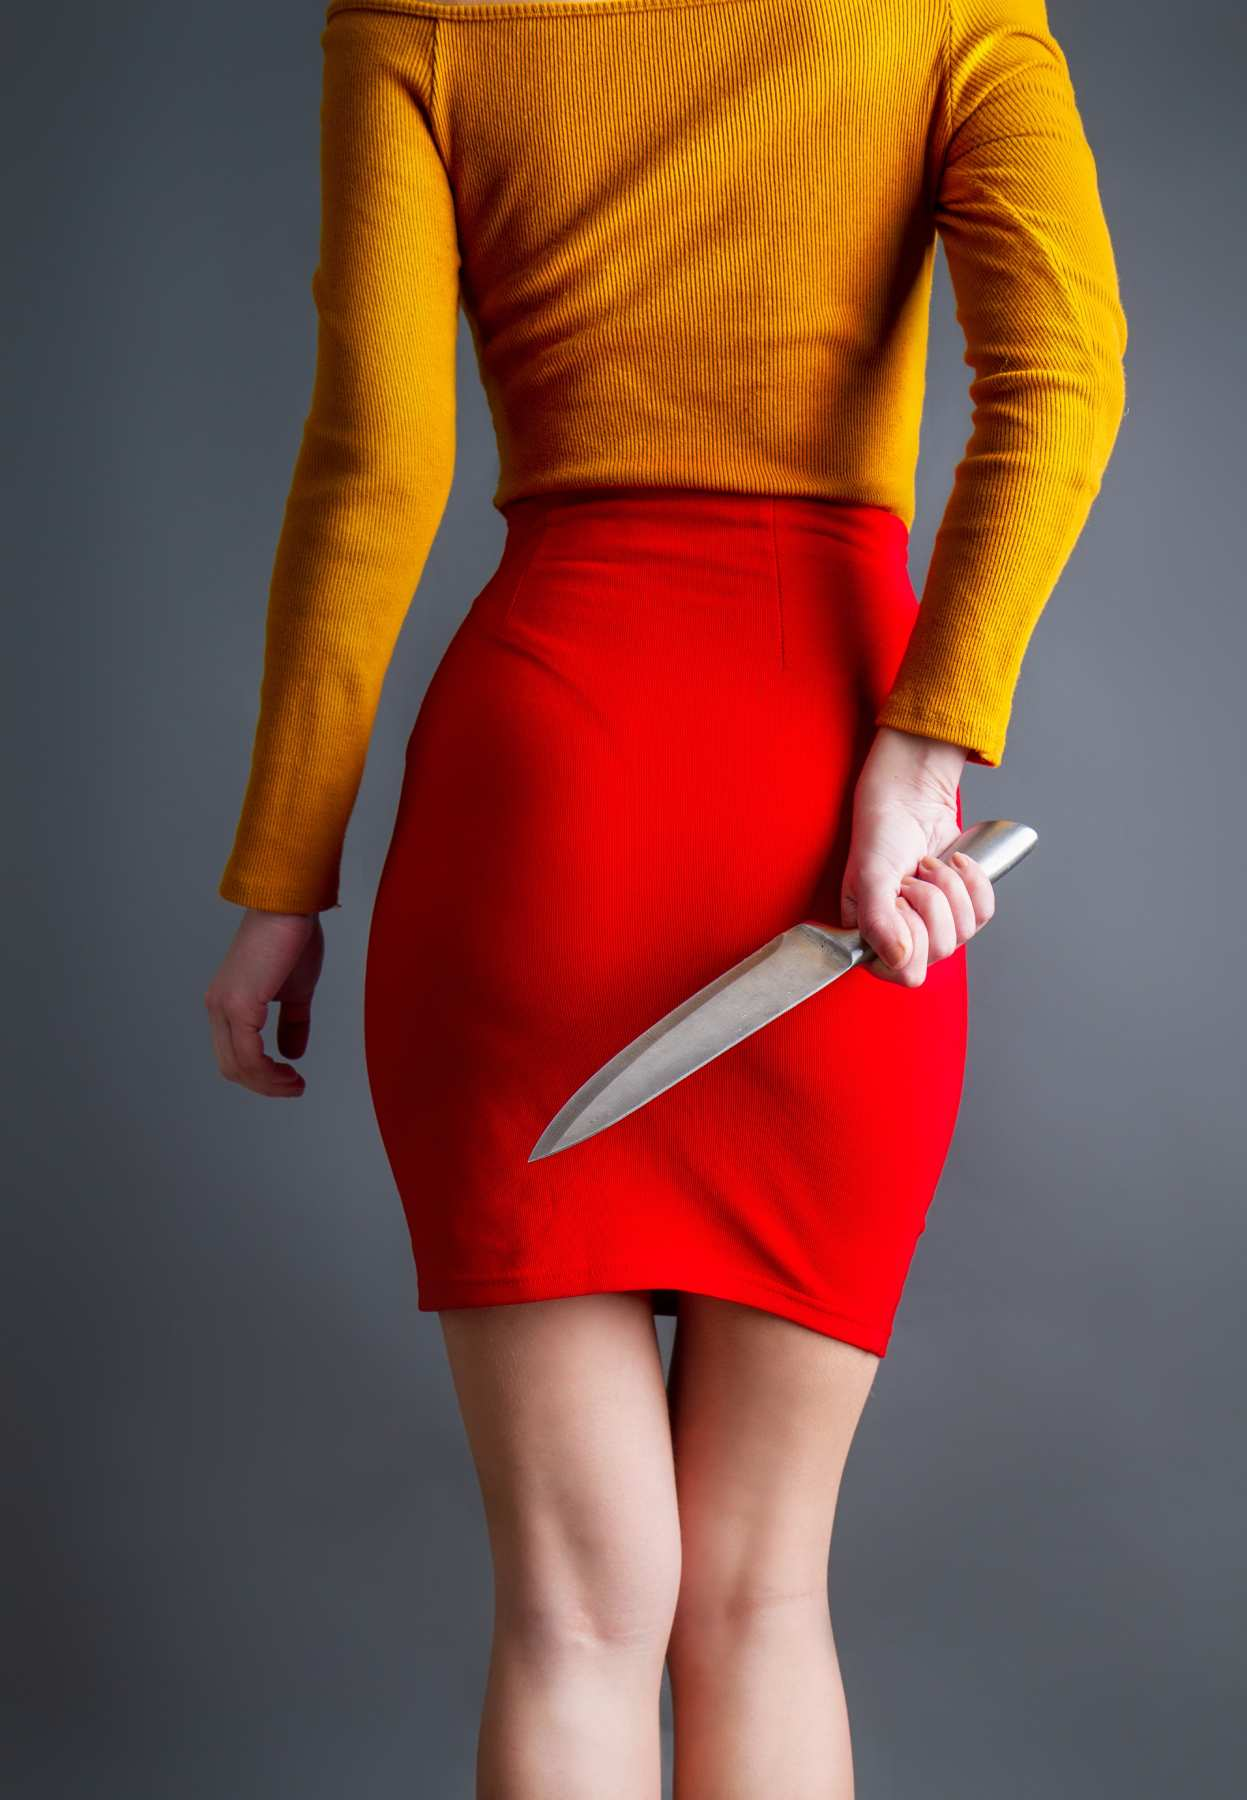 woman in a red skirt holds a knife behind her back